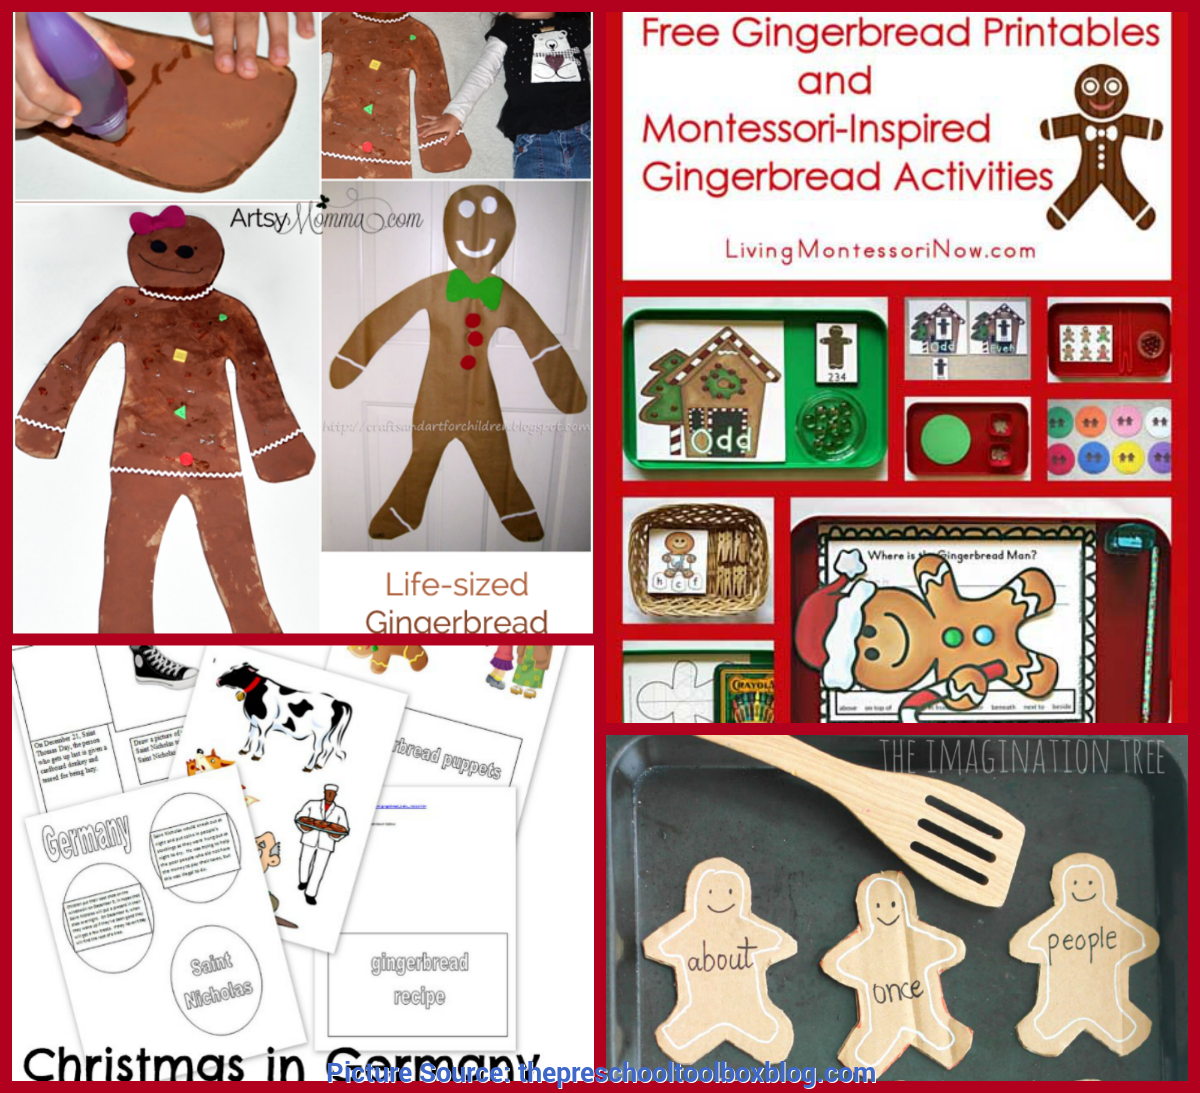 Great Preschool Lesson Plans Gingerbread Theme The Ultimate Gingerbread Theme For Preschool And Kindergarte